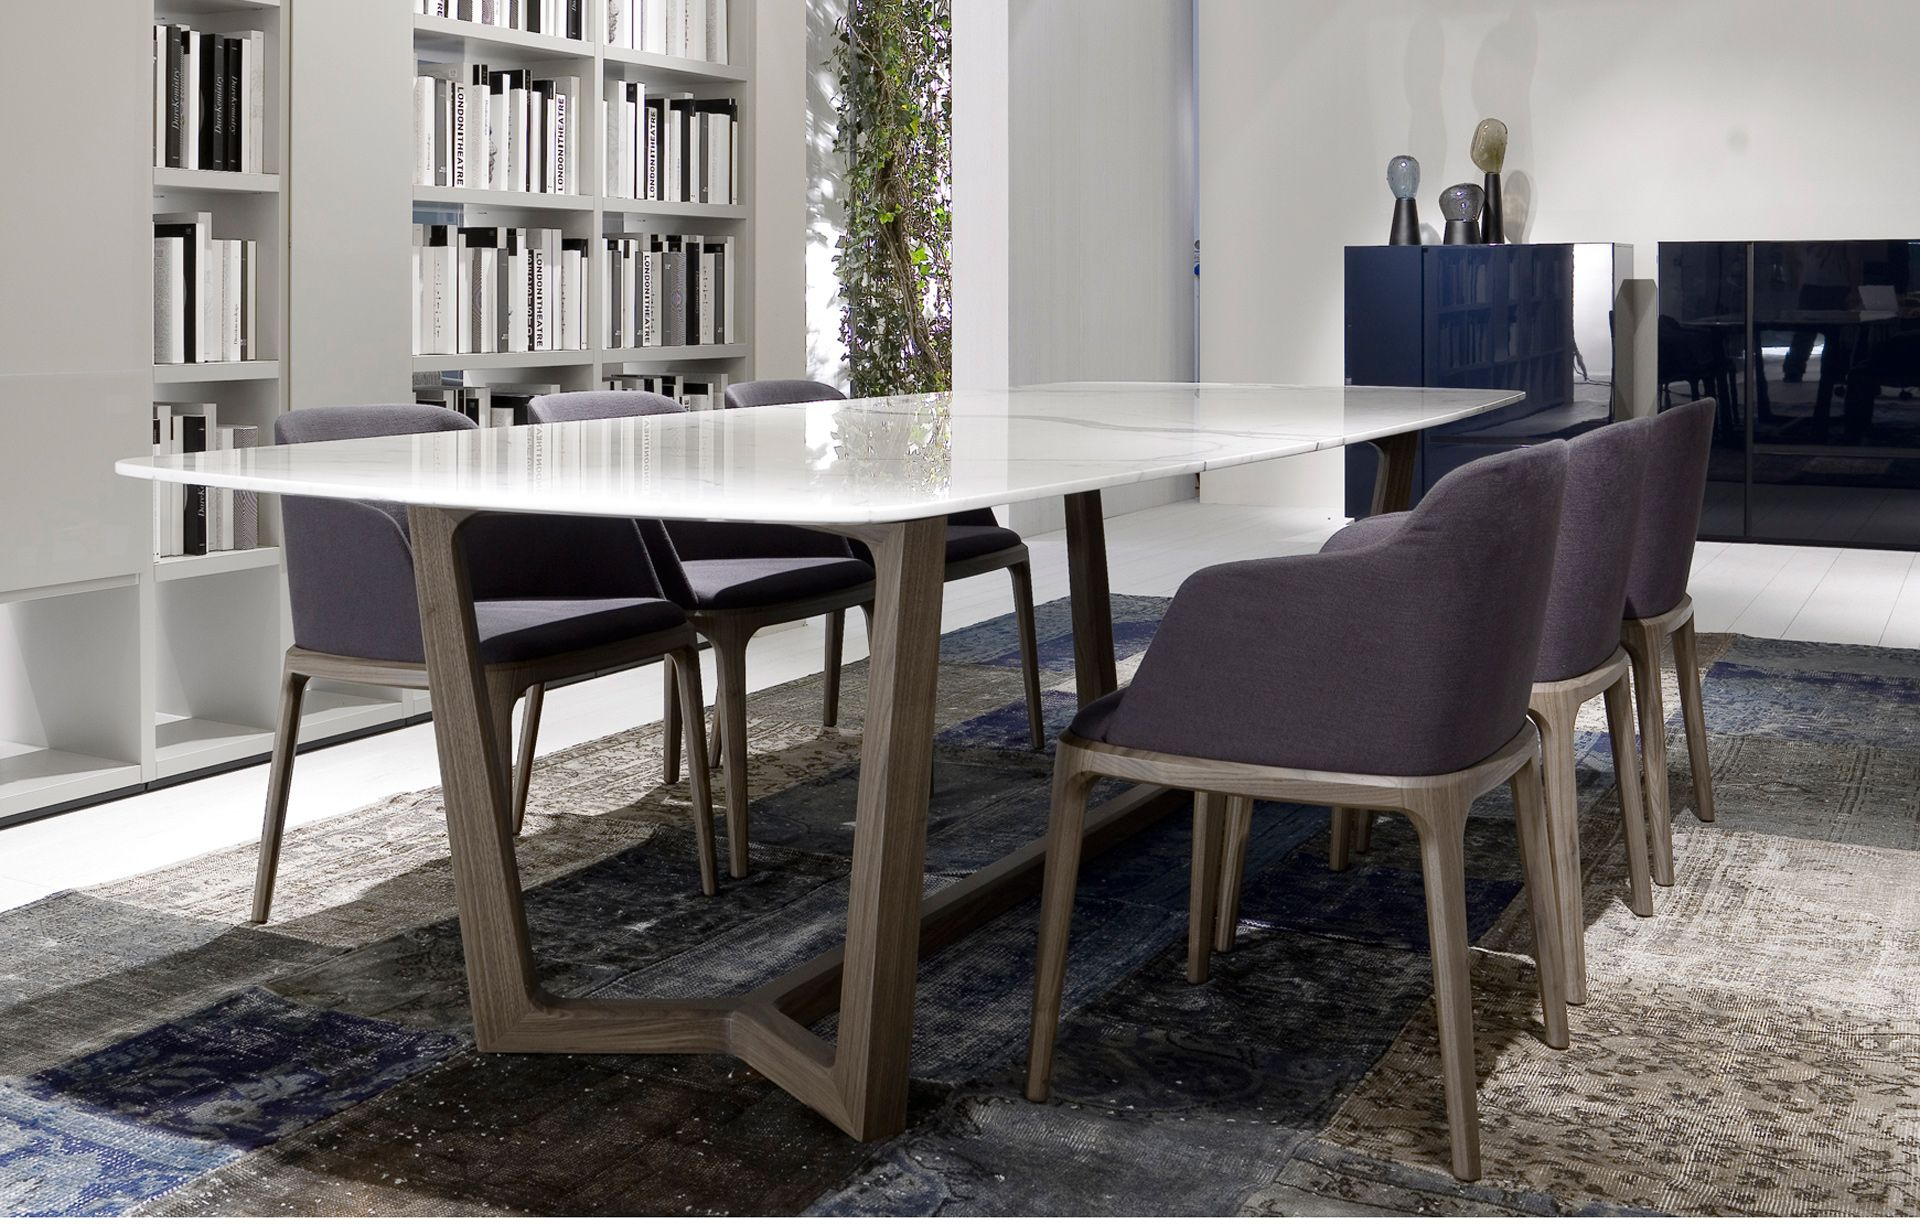 White marble dining table dining room furniture - Room Concorde Table Poliform Design By Emmanuel Gallina Marble Top Dining Tabledining Table Designmarble Tablesgranite Tablewhite